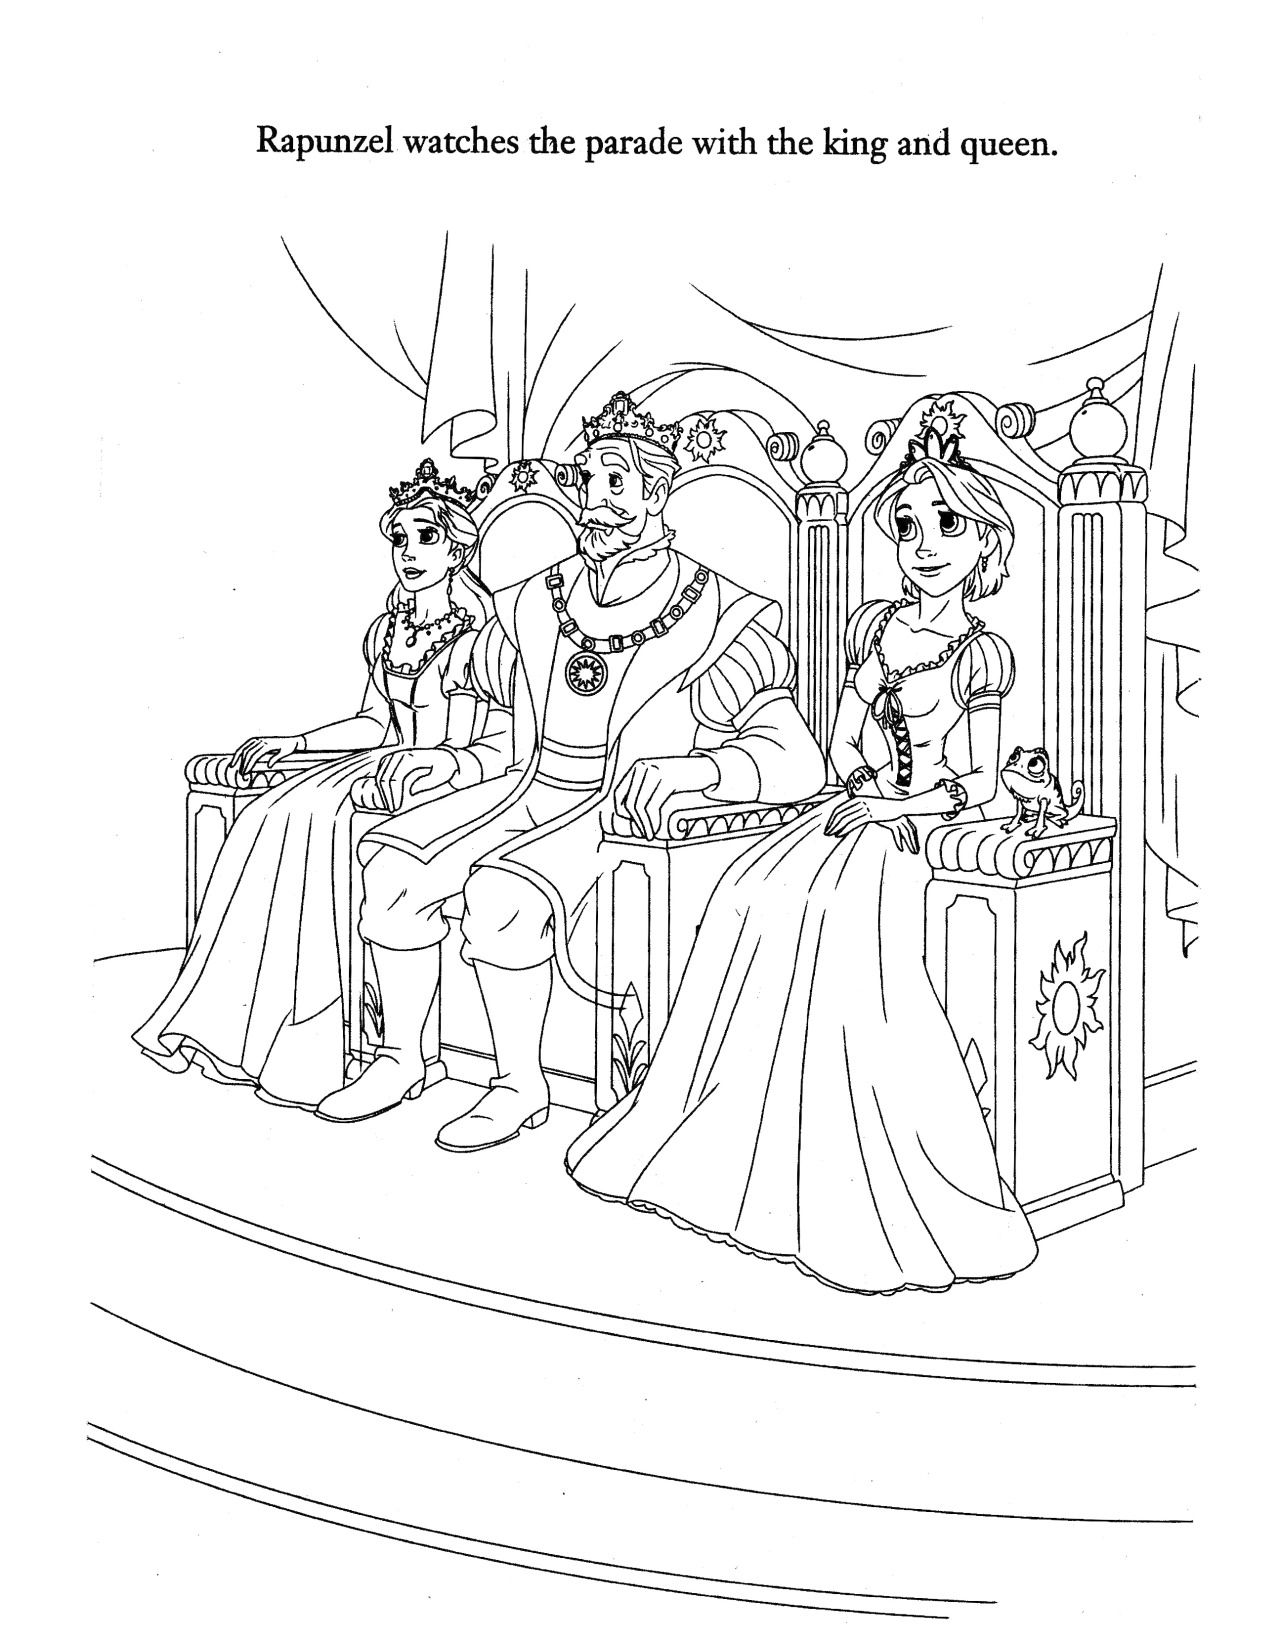 palace pets coloring pages - Google-søgning | Tangled coloring pages,  Cartoon coloring pages, Rapunzel coloring pages